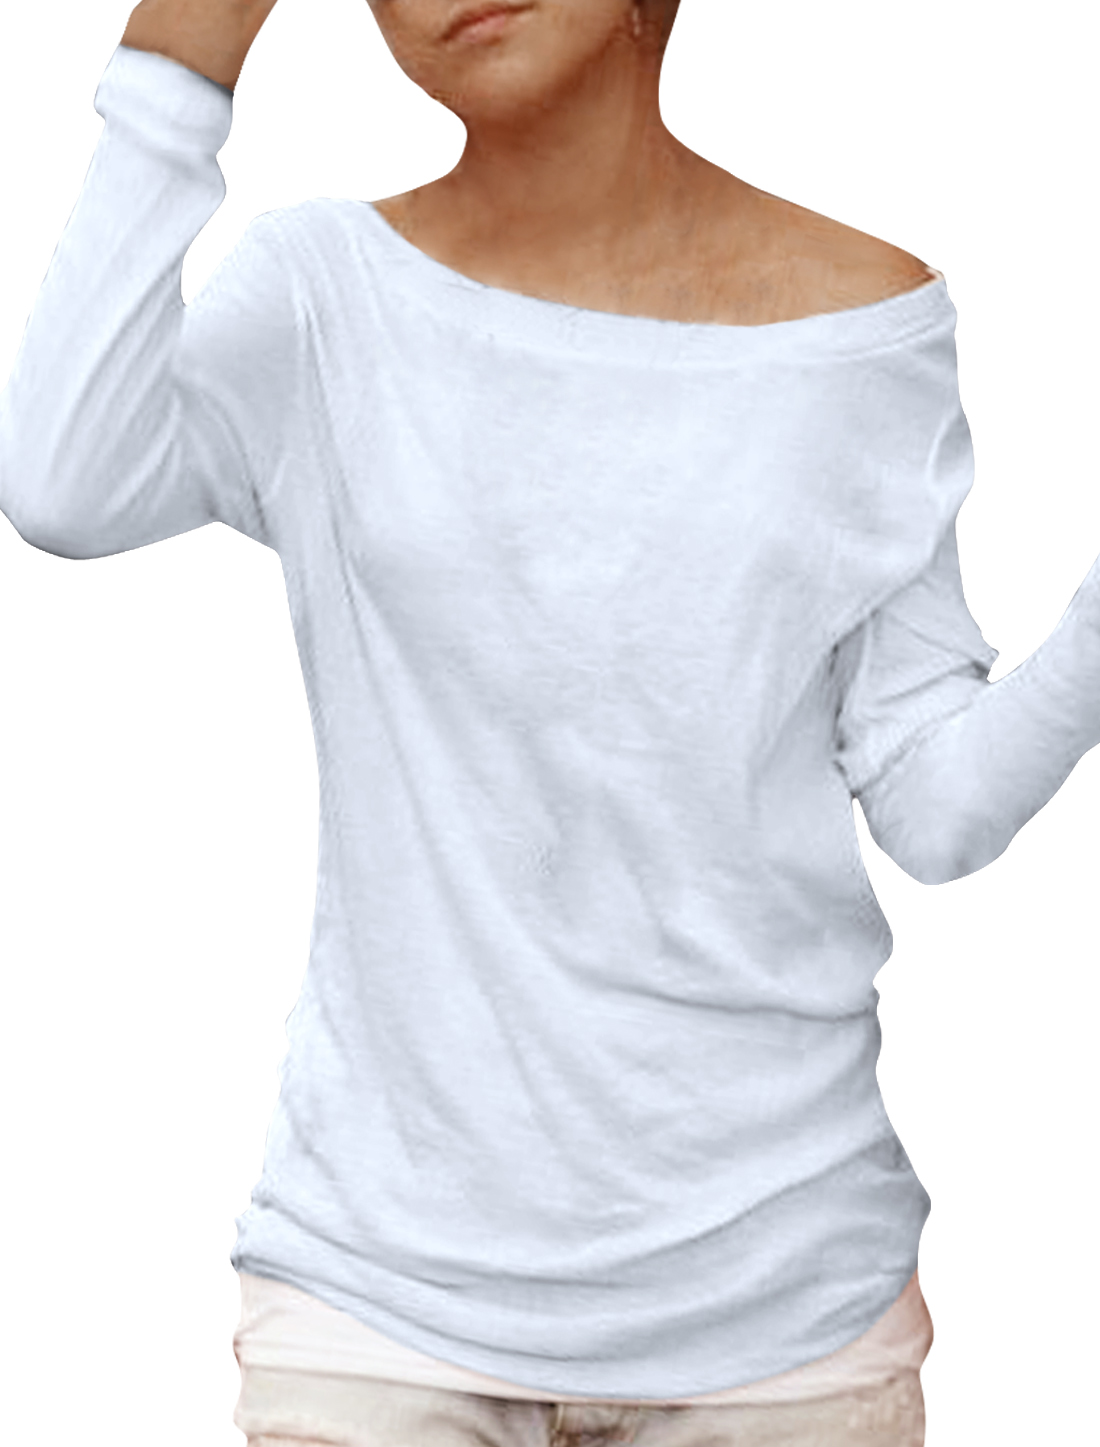 Woman White Long-sleeved Off Shoulder Stretch Leisure Tops XL